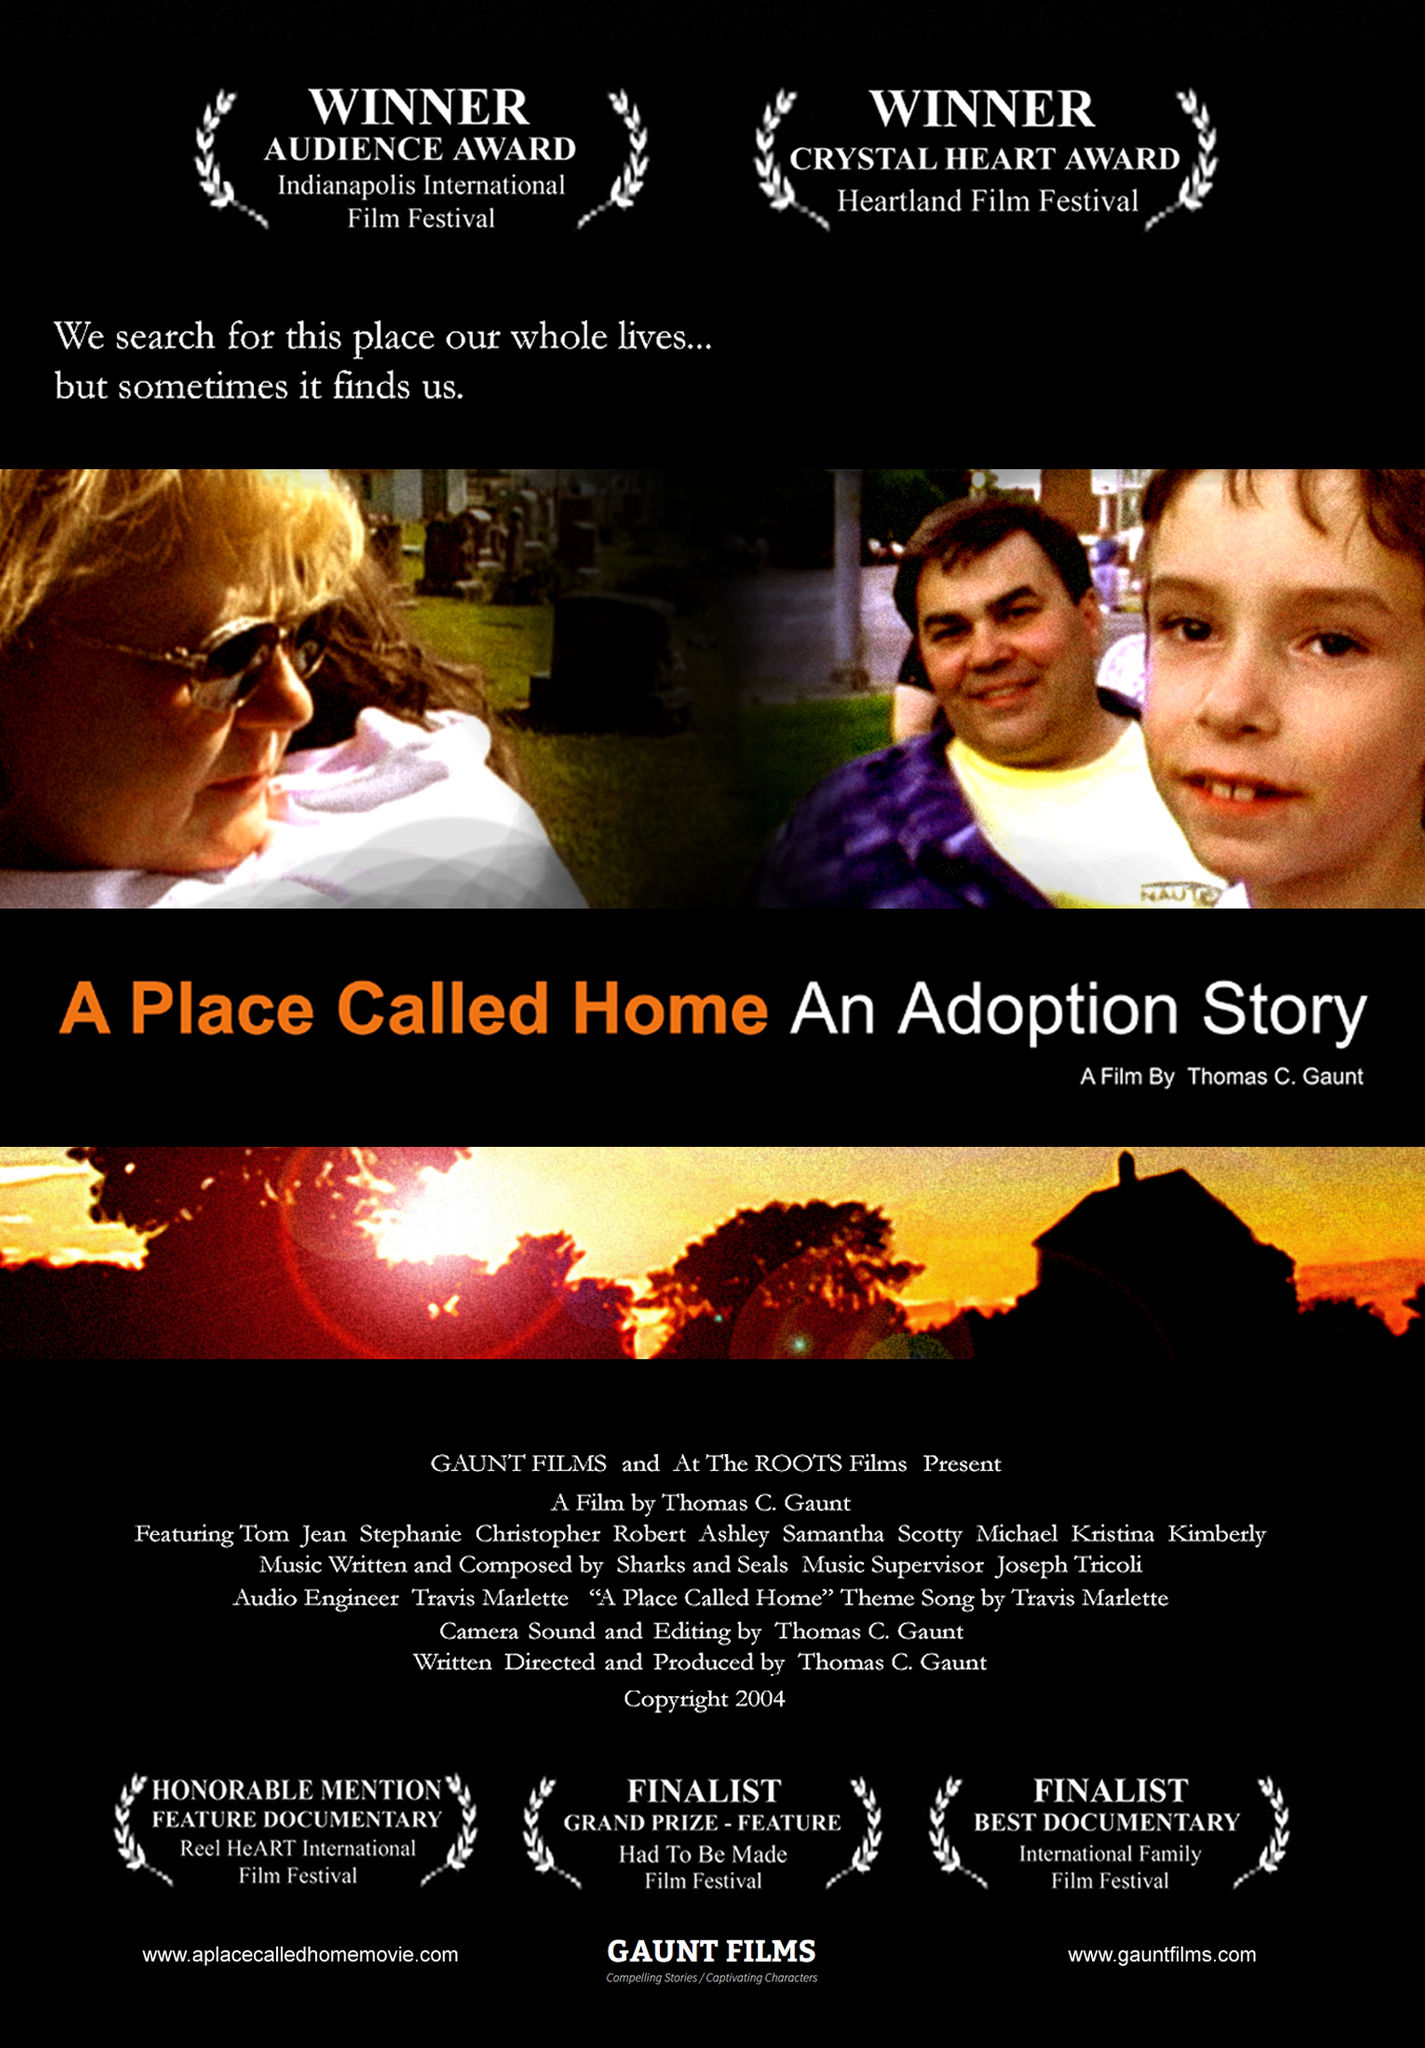 A PLACE CALLED HOME: AN ADOPTION STORY